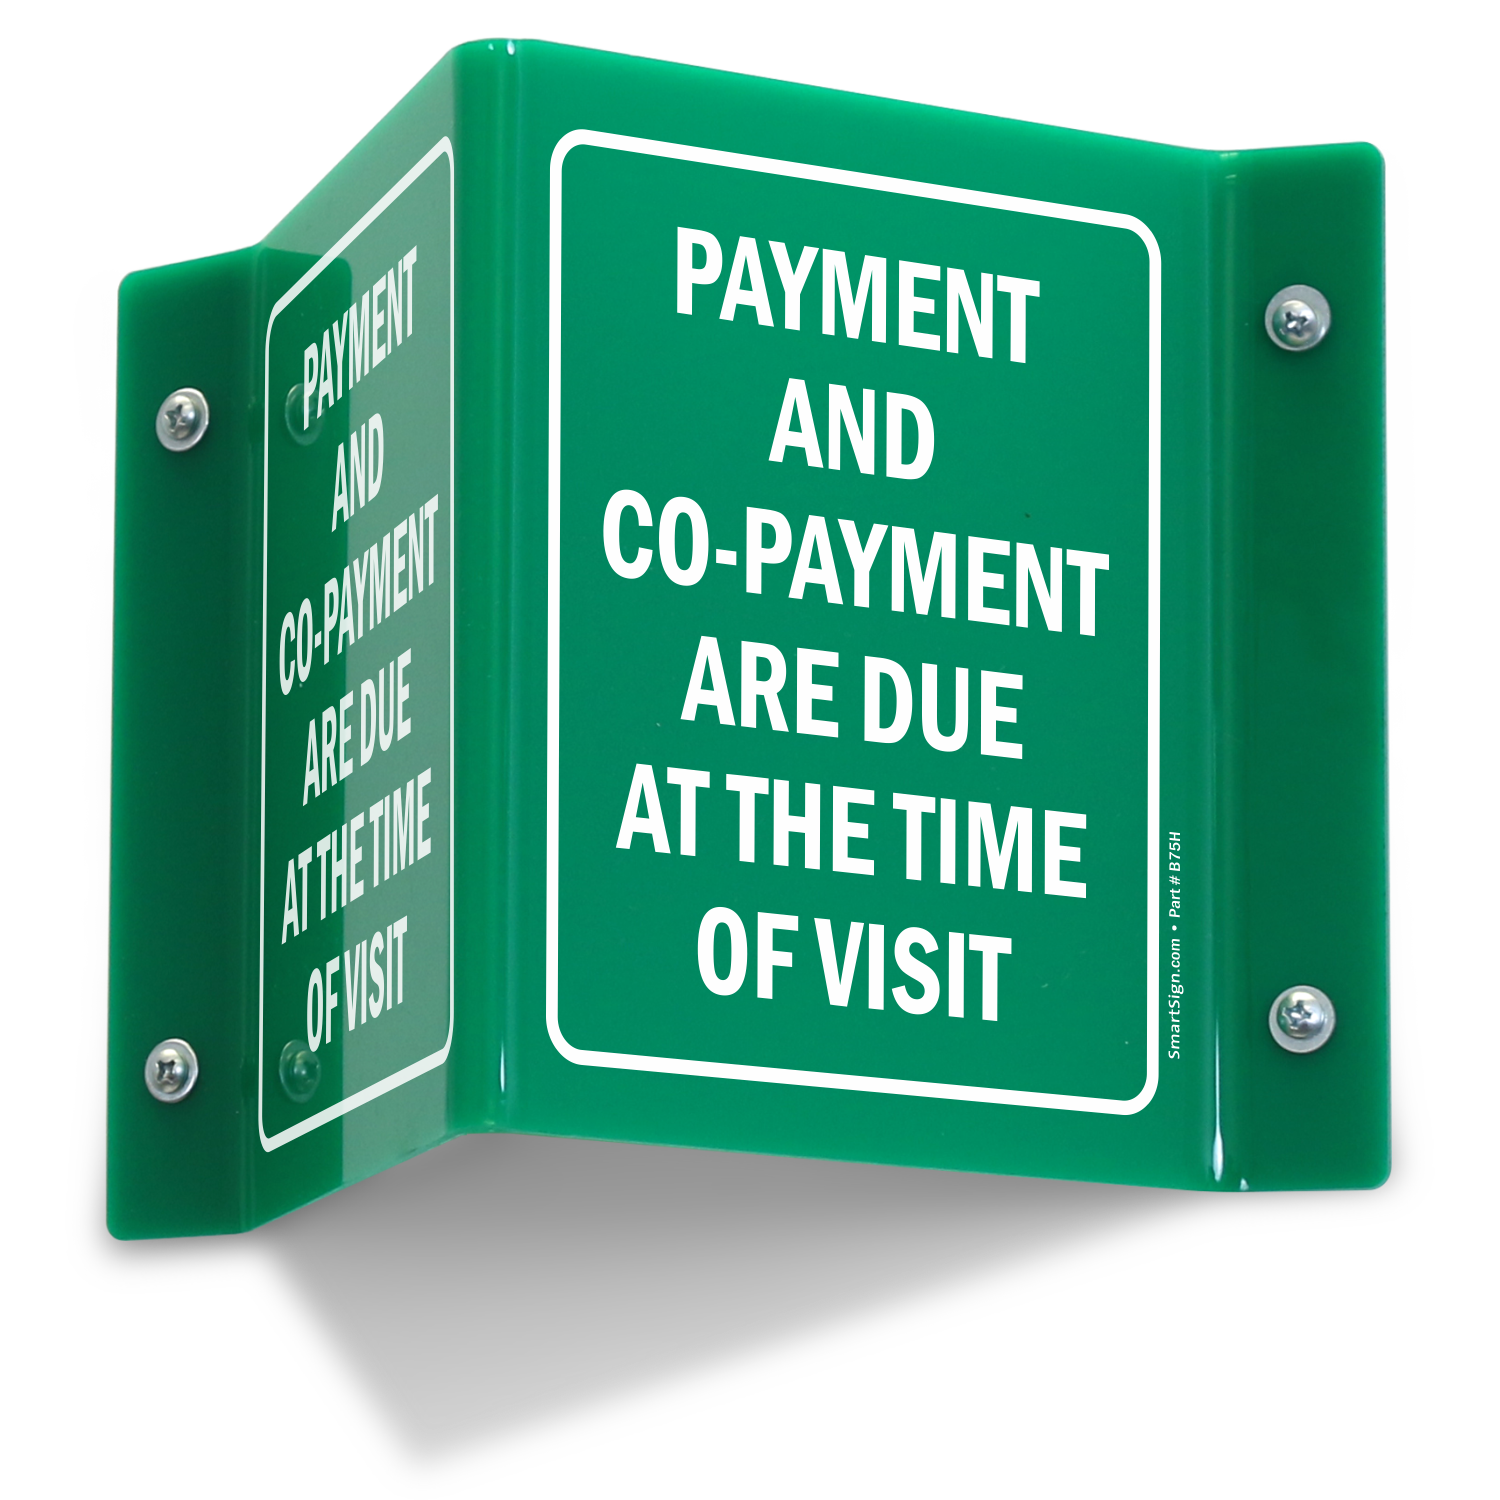 Copay Signs Co Pay Signs And Co Payment Signs